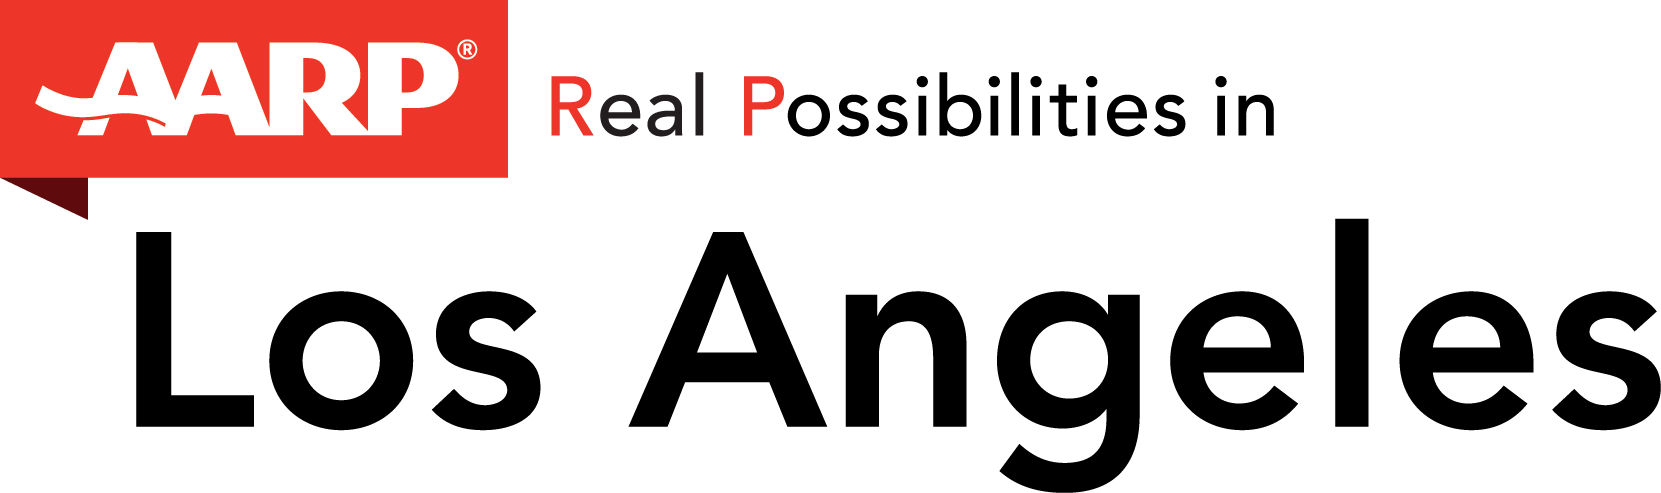 AARP_Los_Angeles_Logo.png